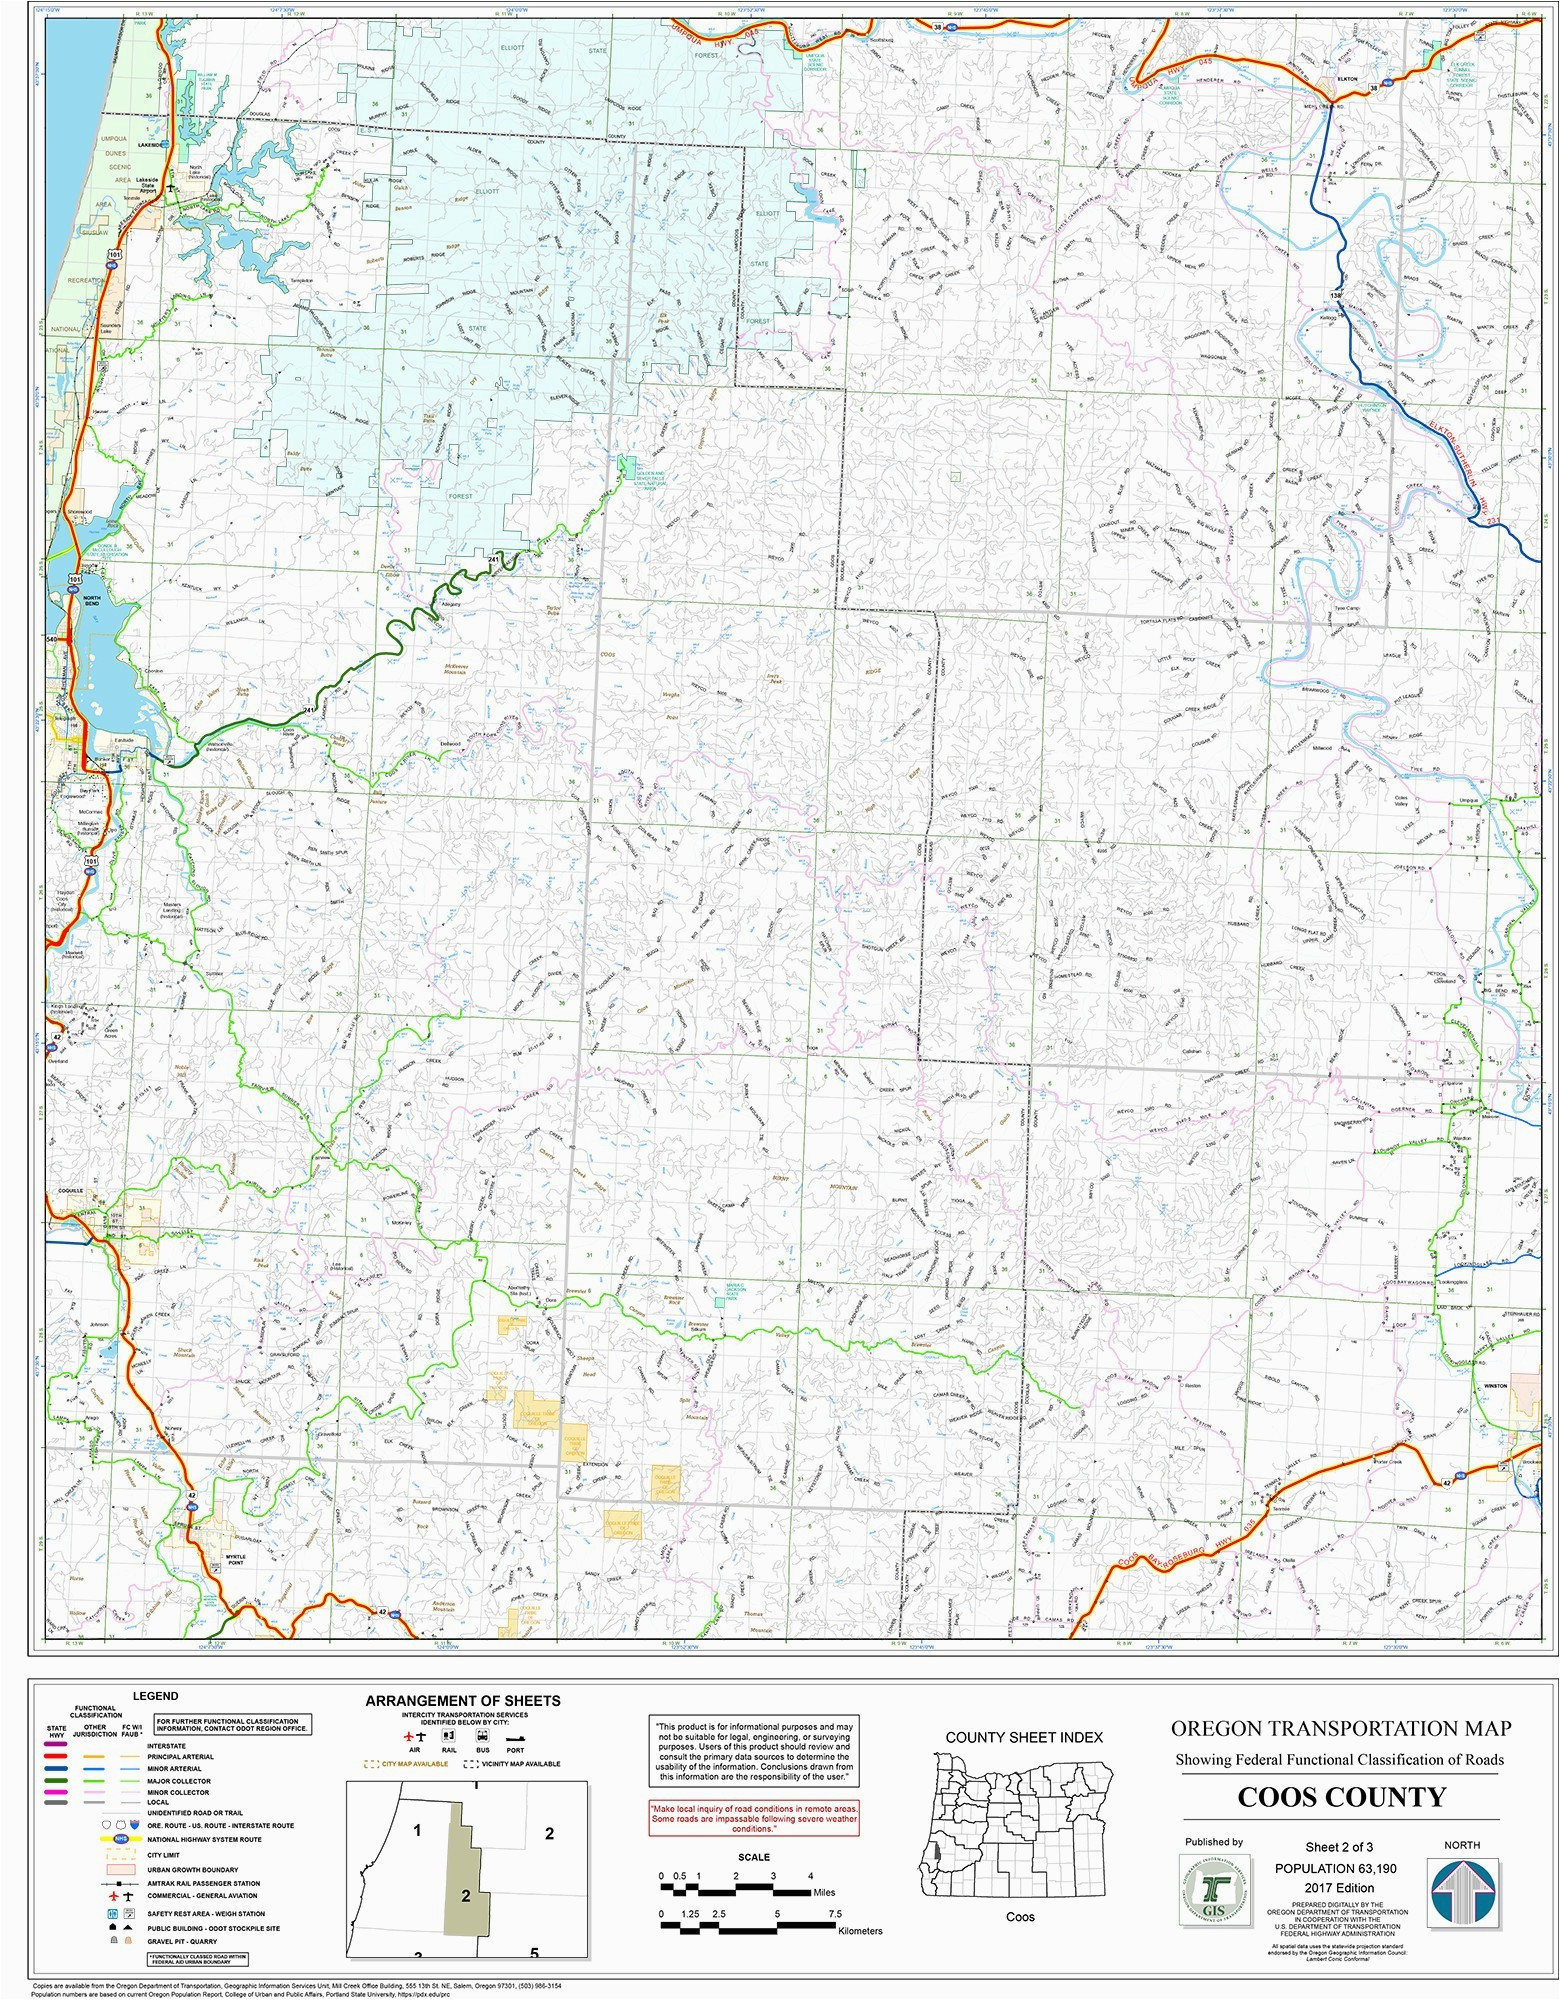 Colorado Roads Conditions Map Colorado State Map with Counties and ...